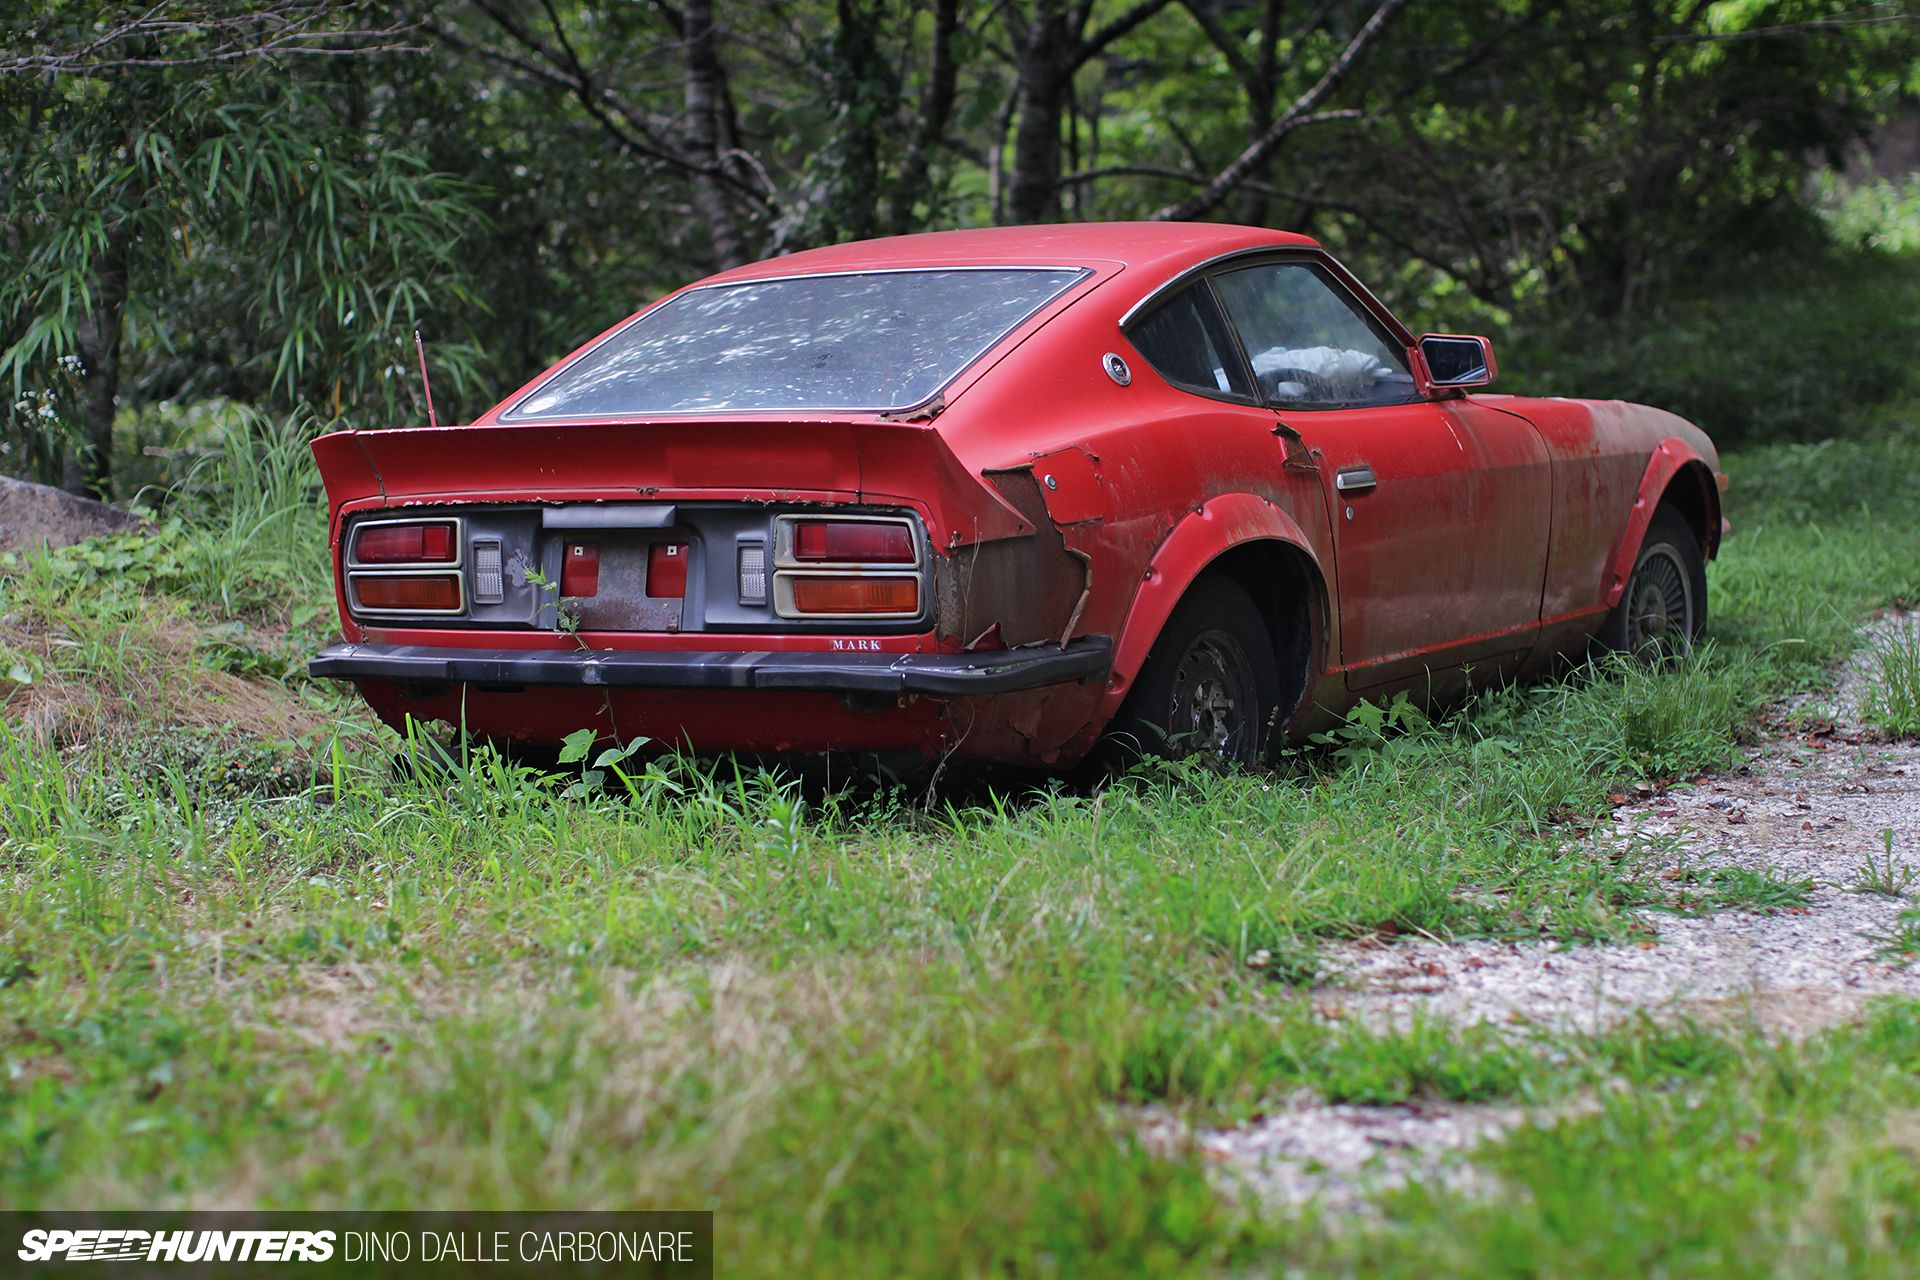 Kyusha Cemetery: Where Old JDM Cars Go To Die | Abandoned ...